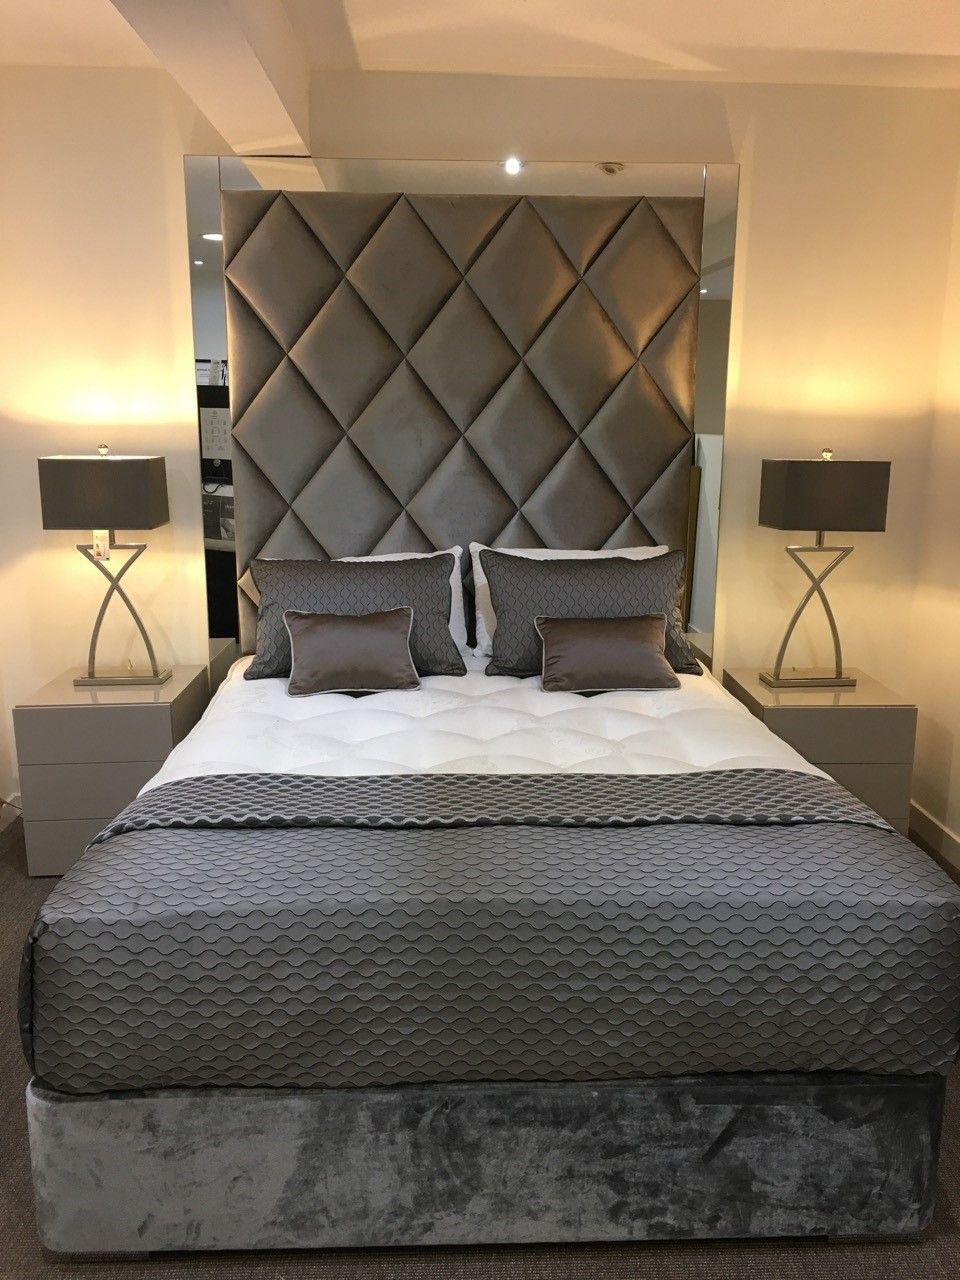 Upholstered Headboard With Mirrored Surround On This Gorgeous